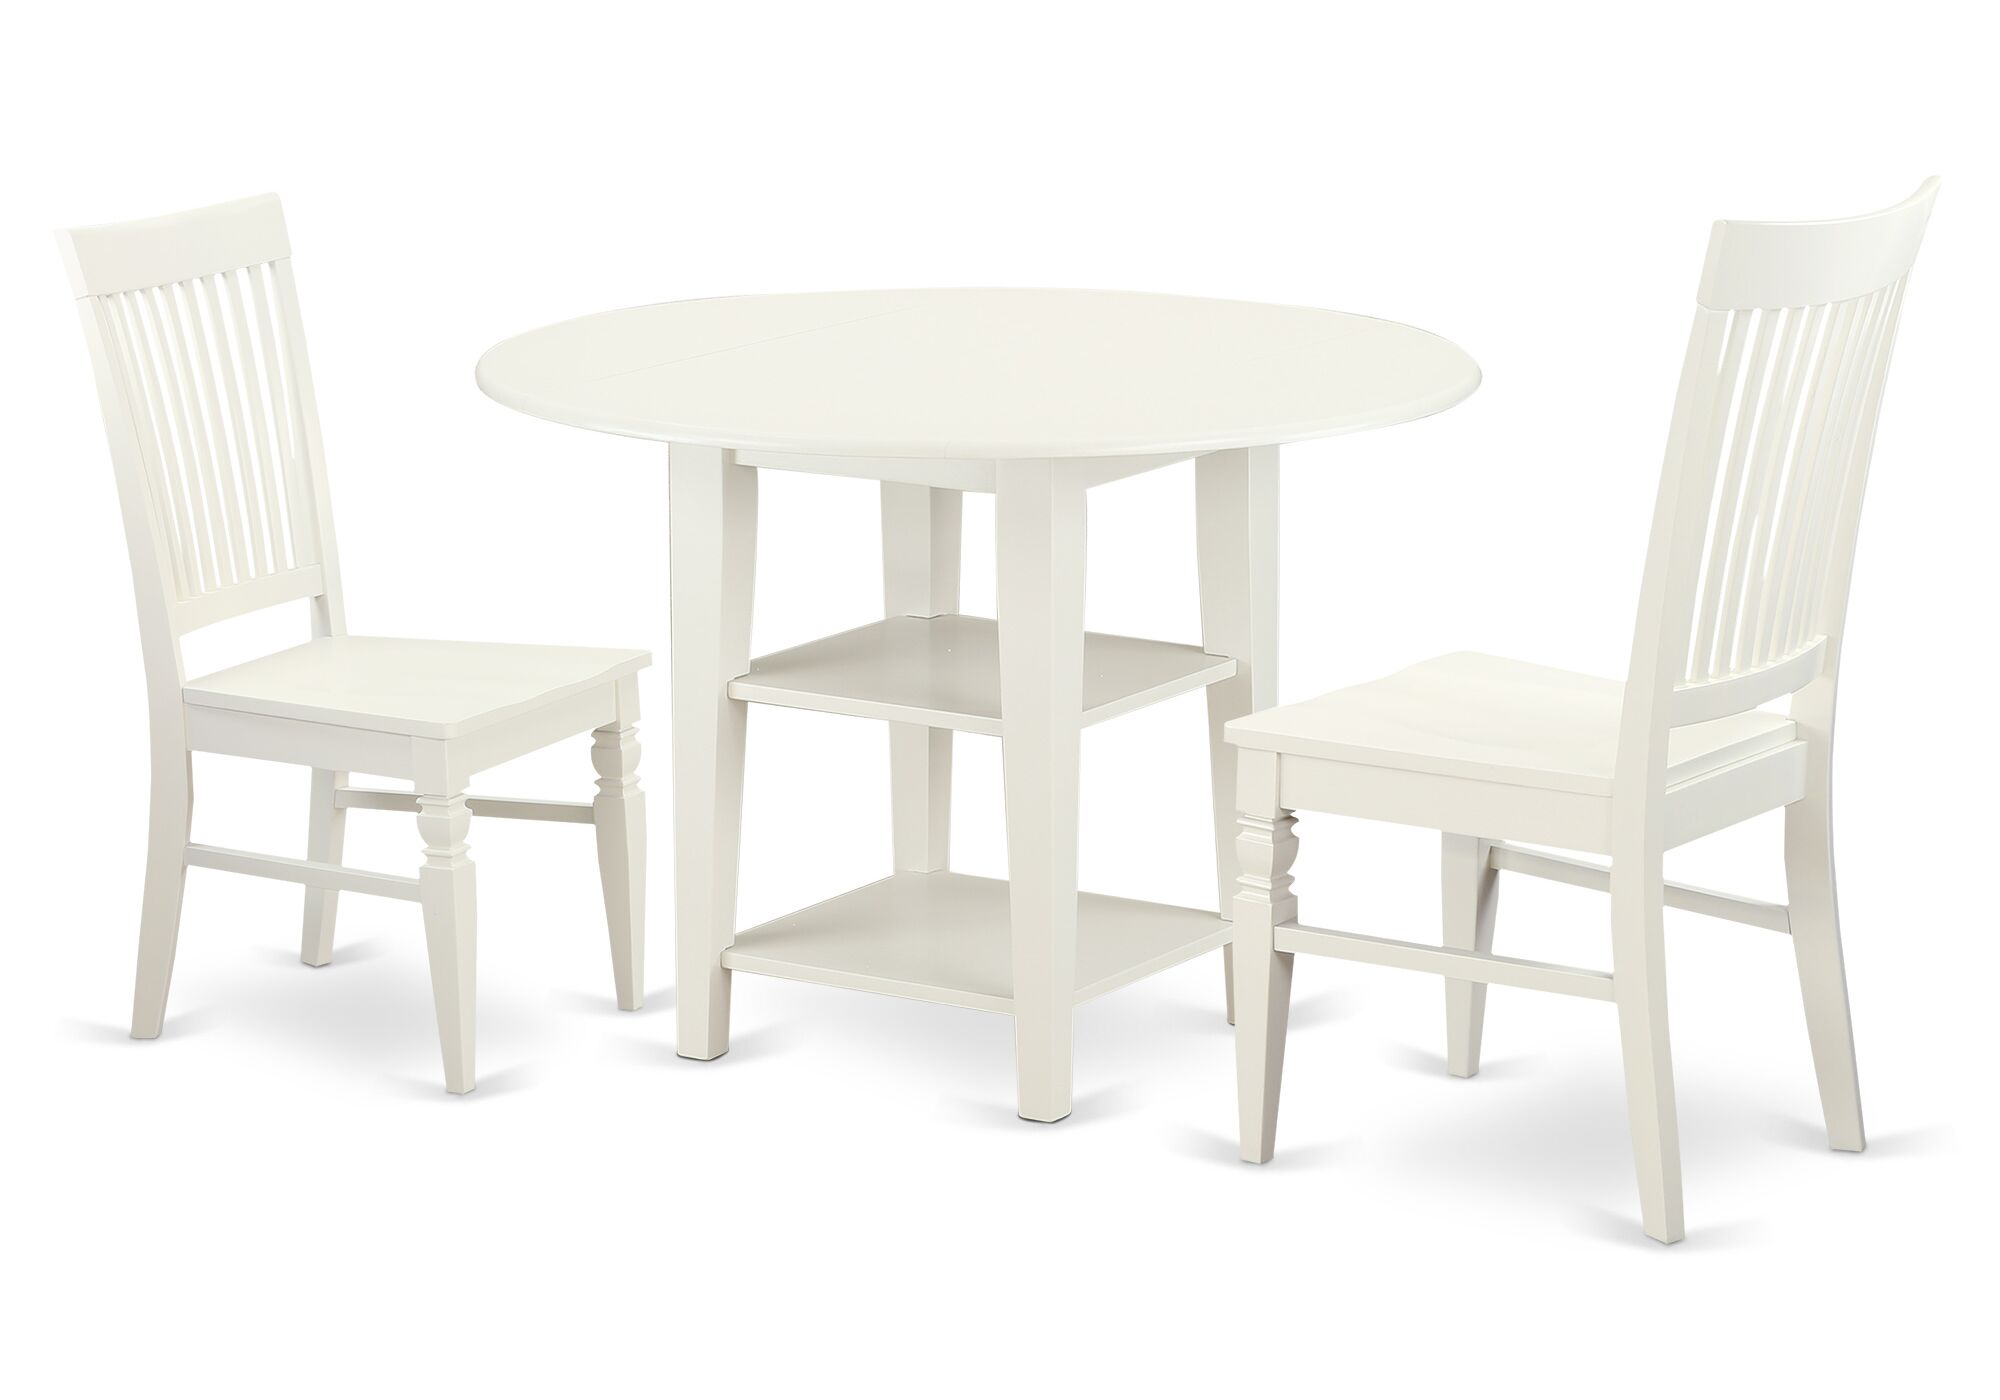 Dining Table Sets Tyshawn 3 Piece Drop Leaf Breakfast Nook Solid Wood Dining Set